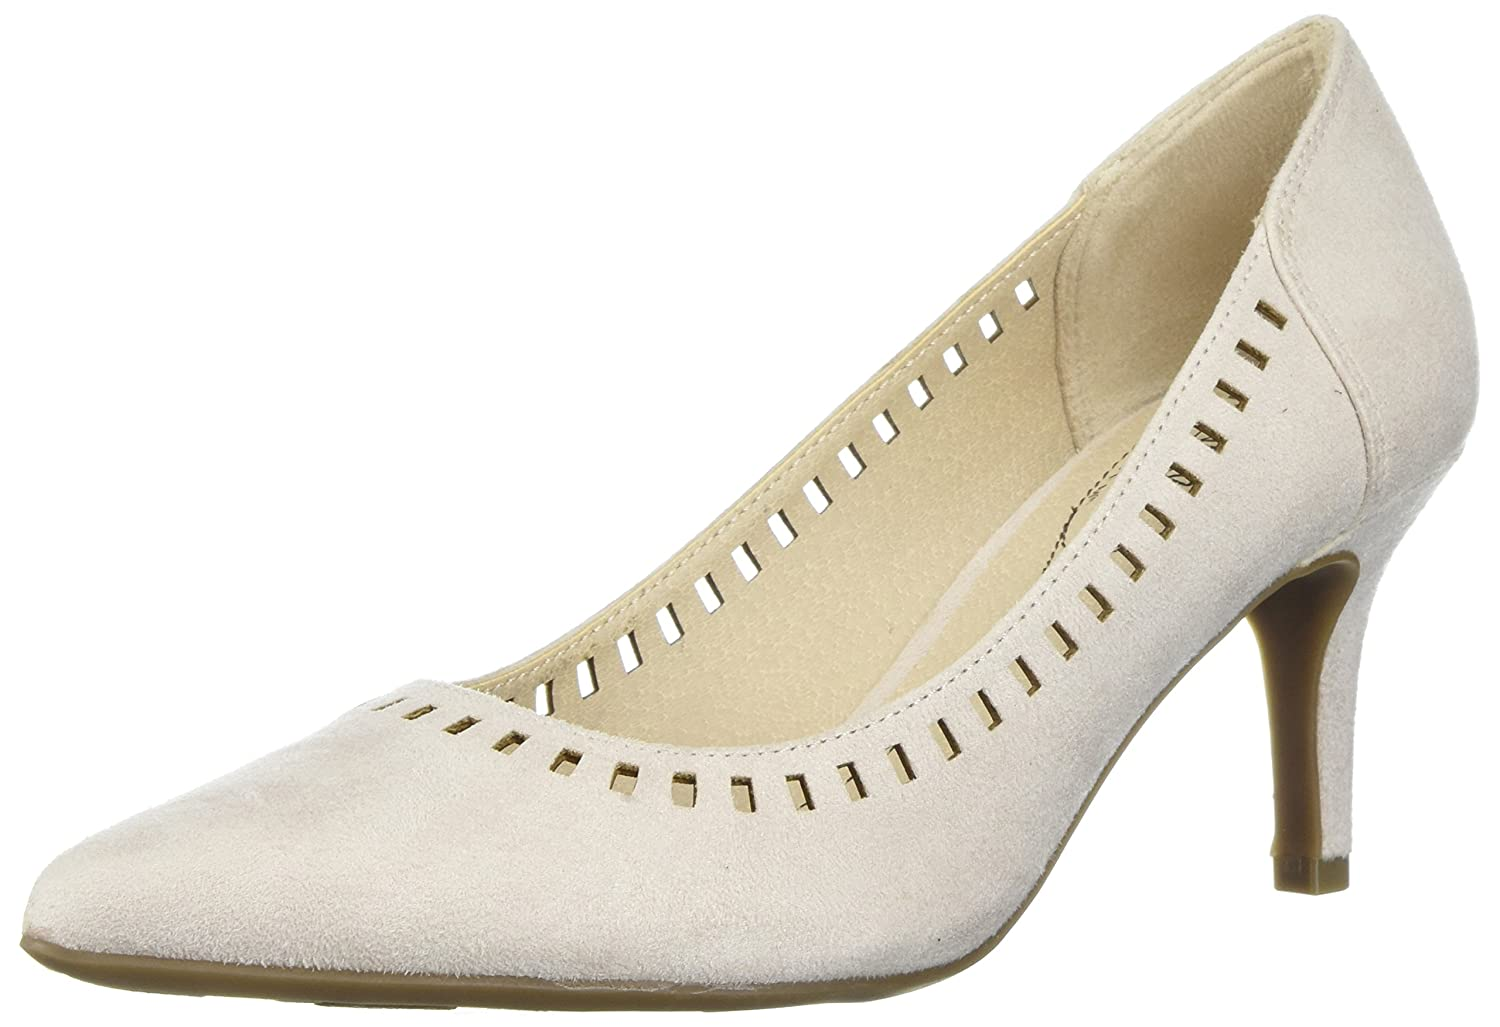 LifeStride Women's Sevyn 2 Pump B0775WSFD2 7.5 W US|Blush